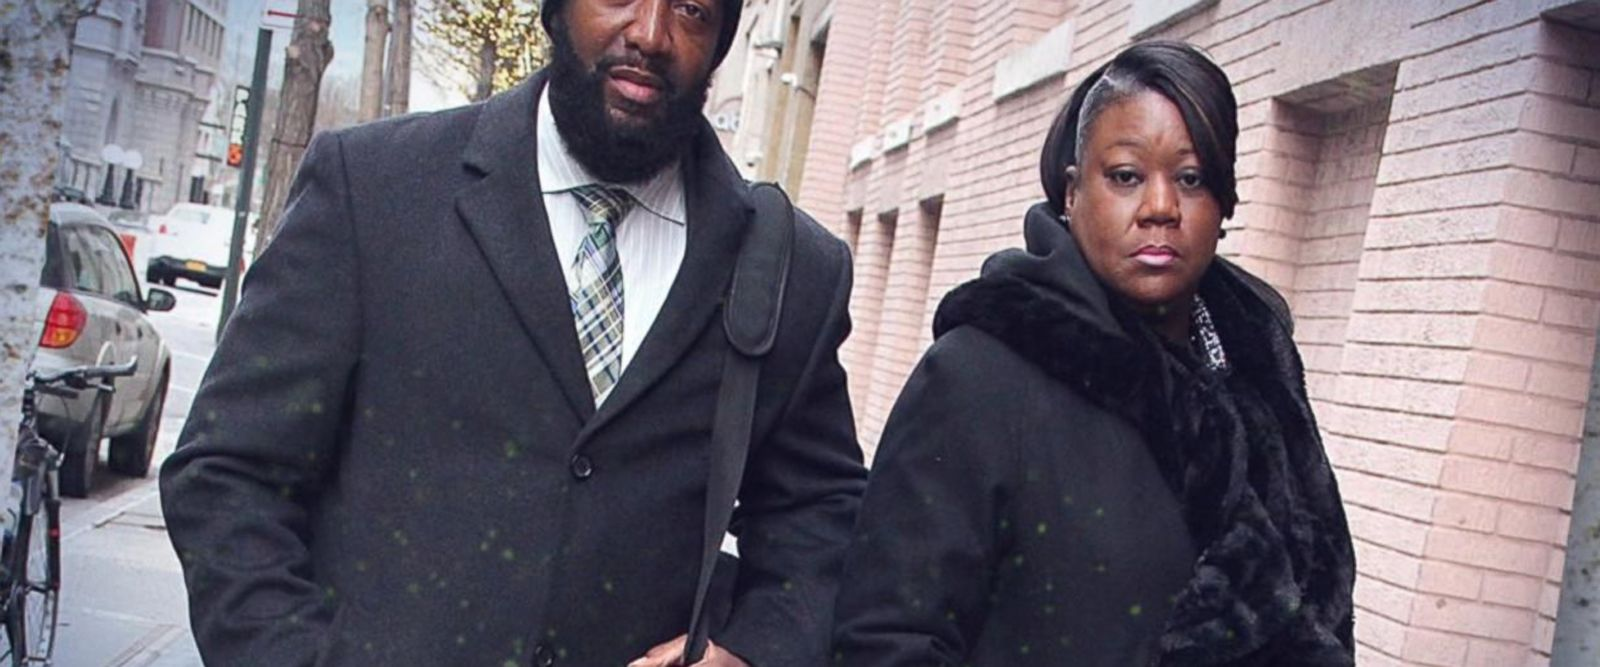 VIDEO: Trayvon Martin's parents describe taking on new roles as activists